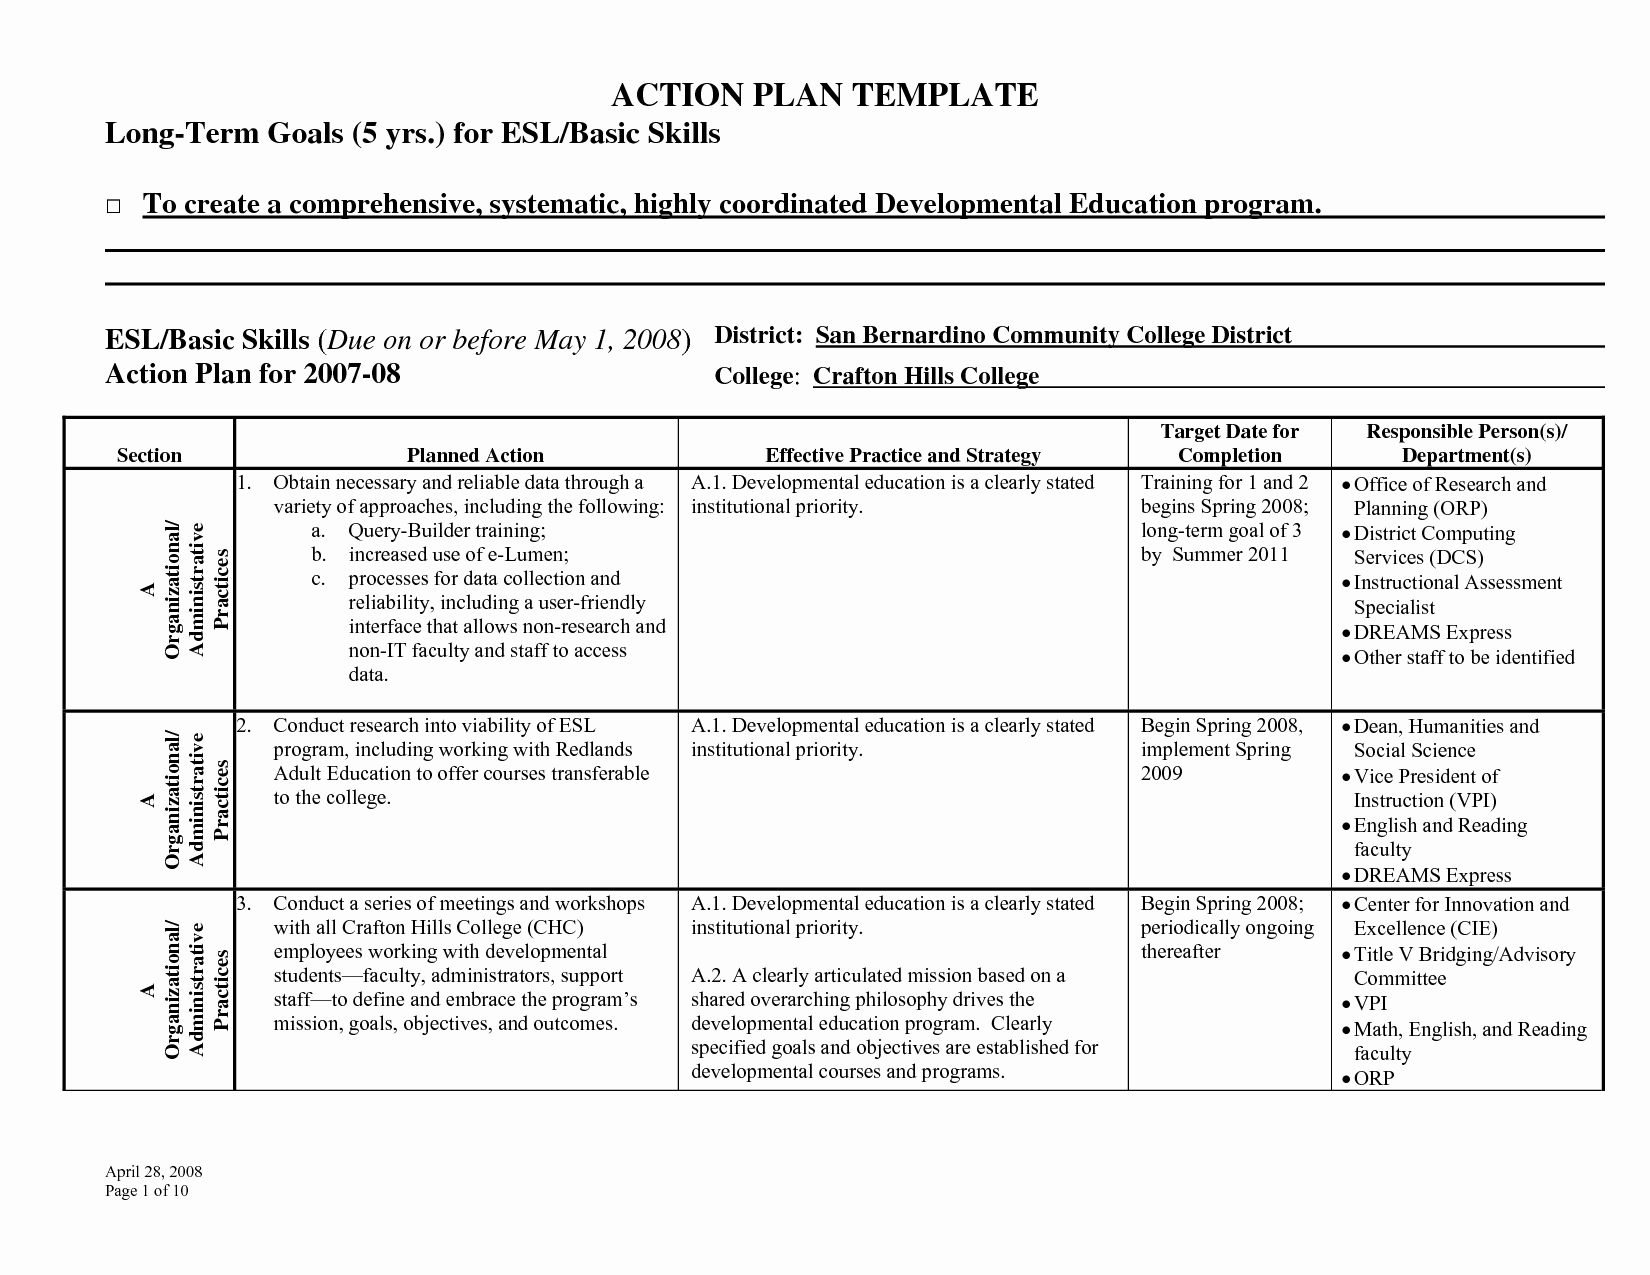 Behavior Support Plan Template New Individual Behavior Support Plan Action Plan Template form